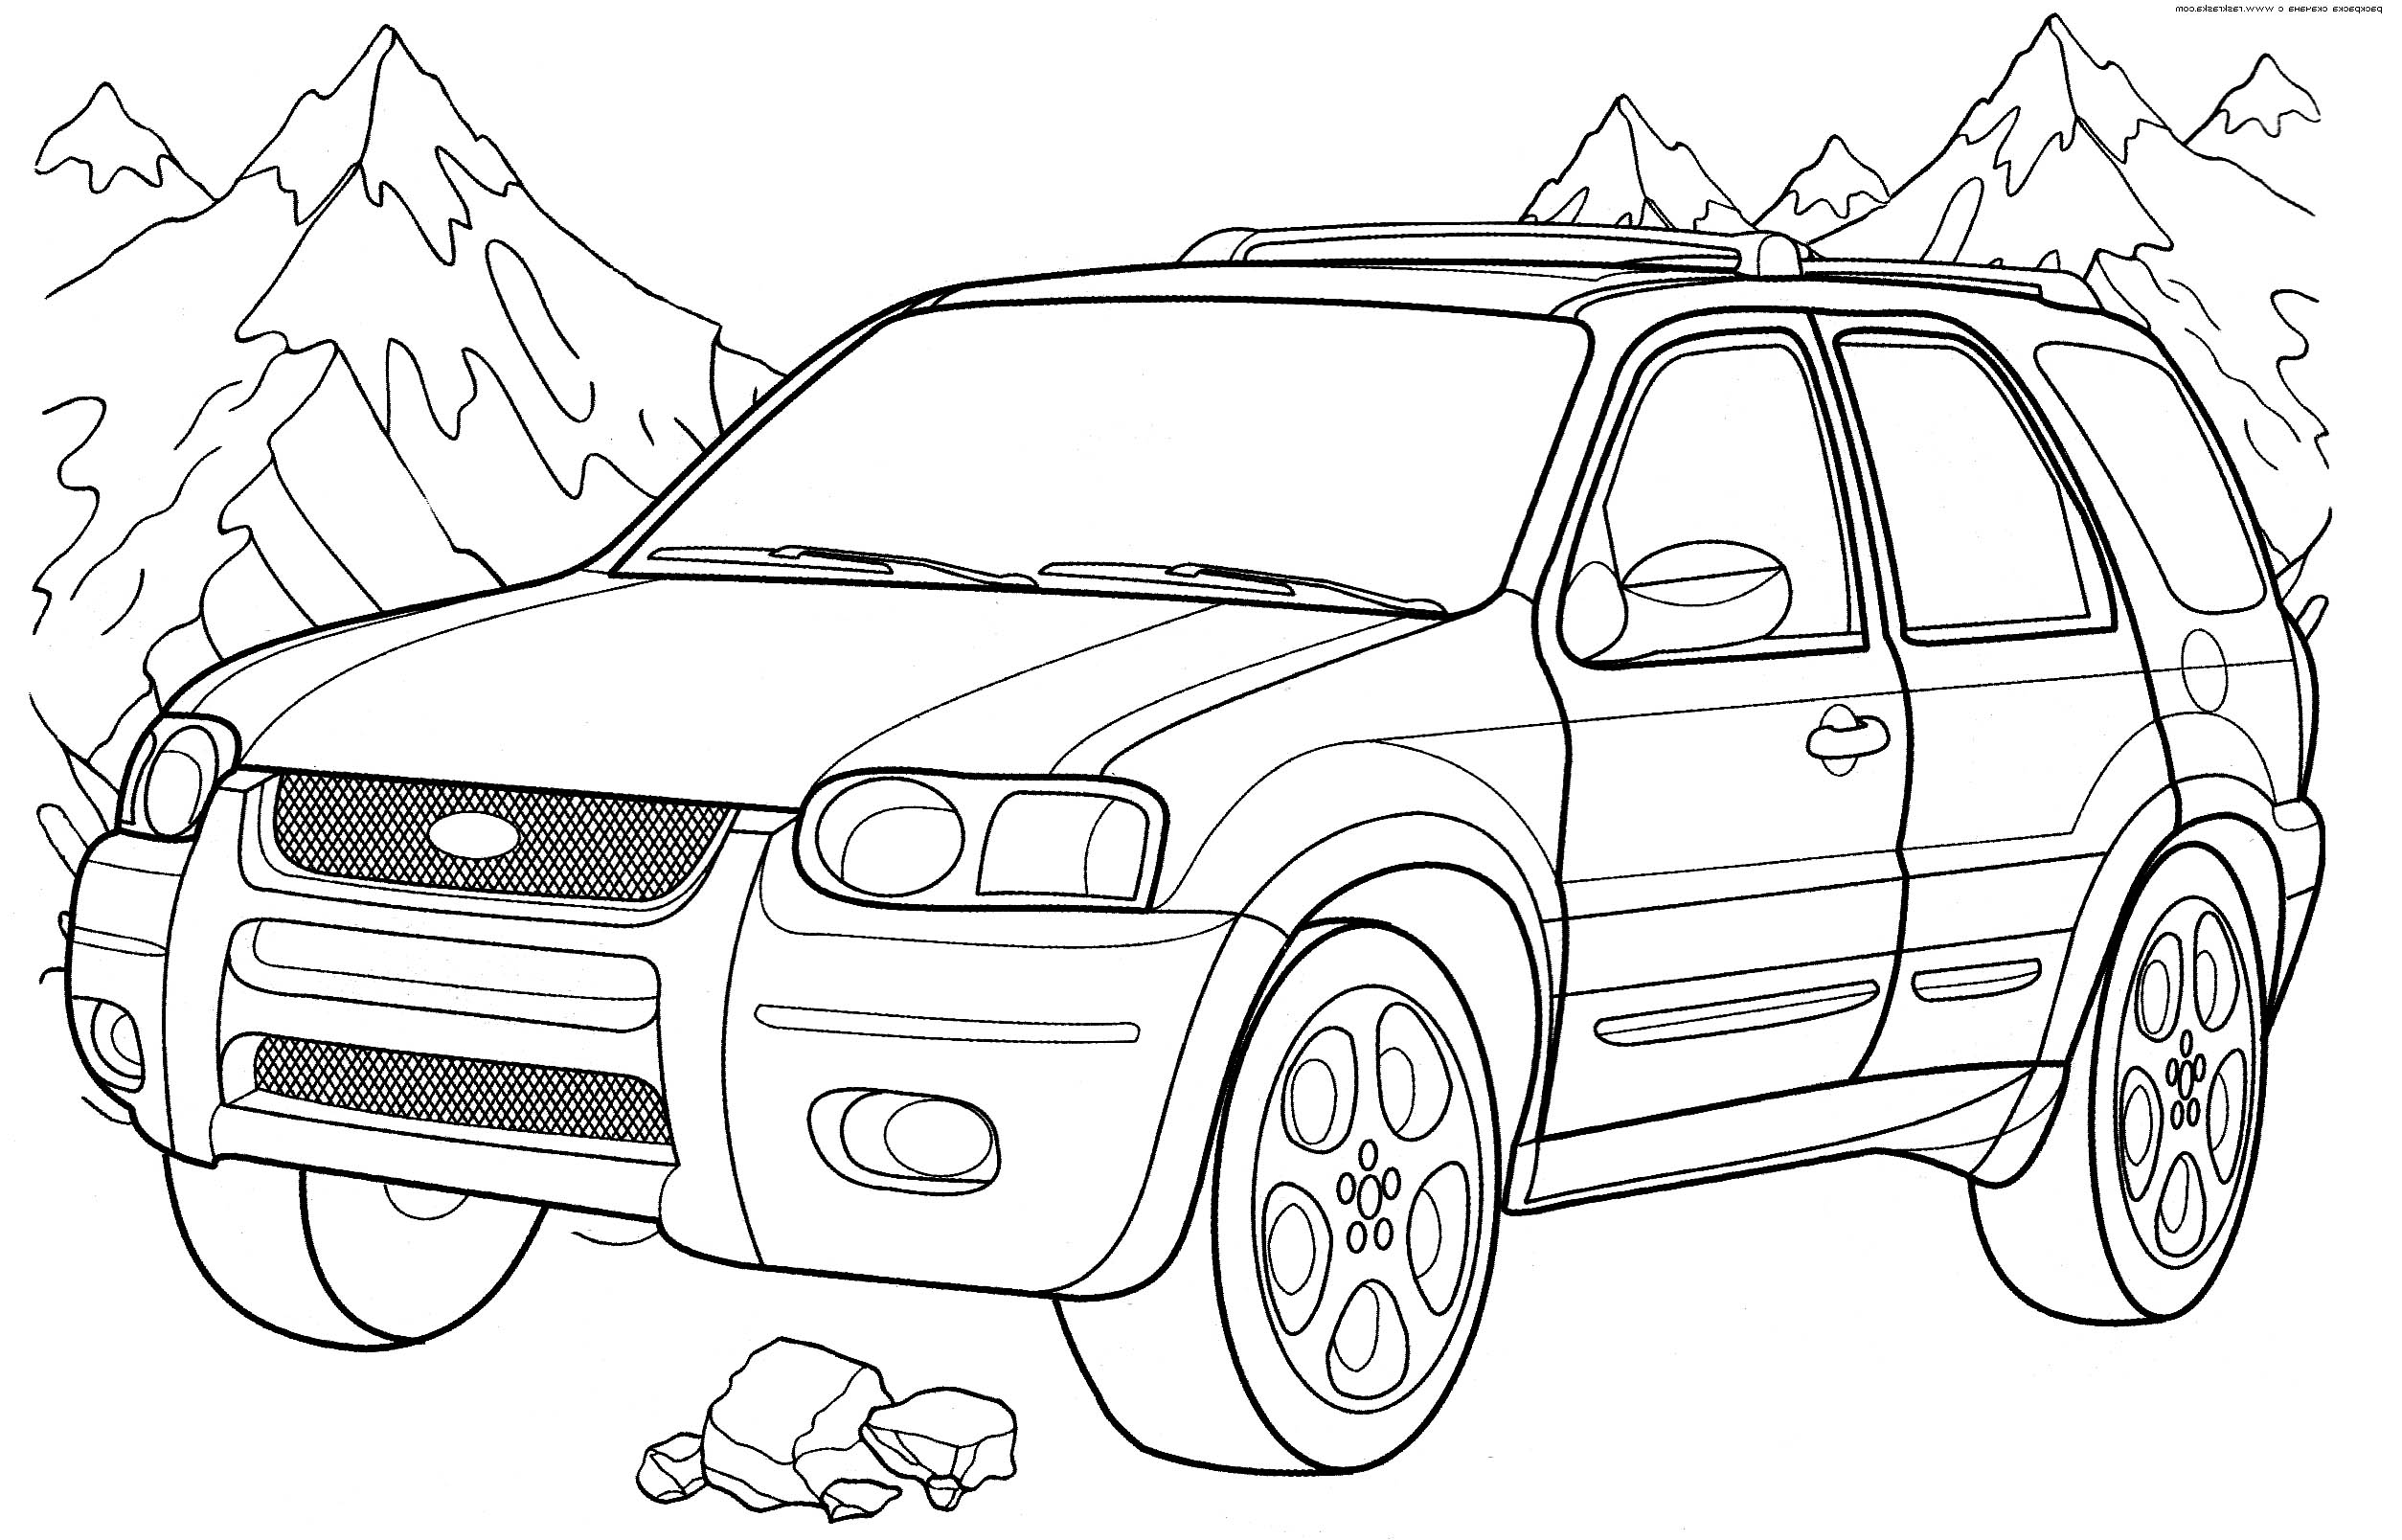 printable coloring pages of cars cars coloring pages best coloring pages for kids of pages printable cars coloring